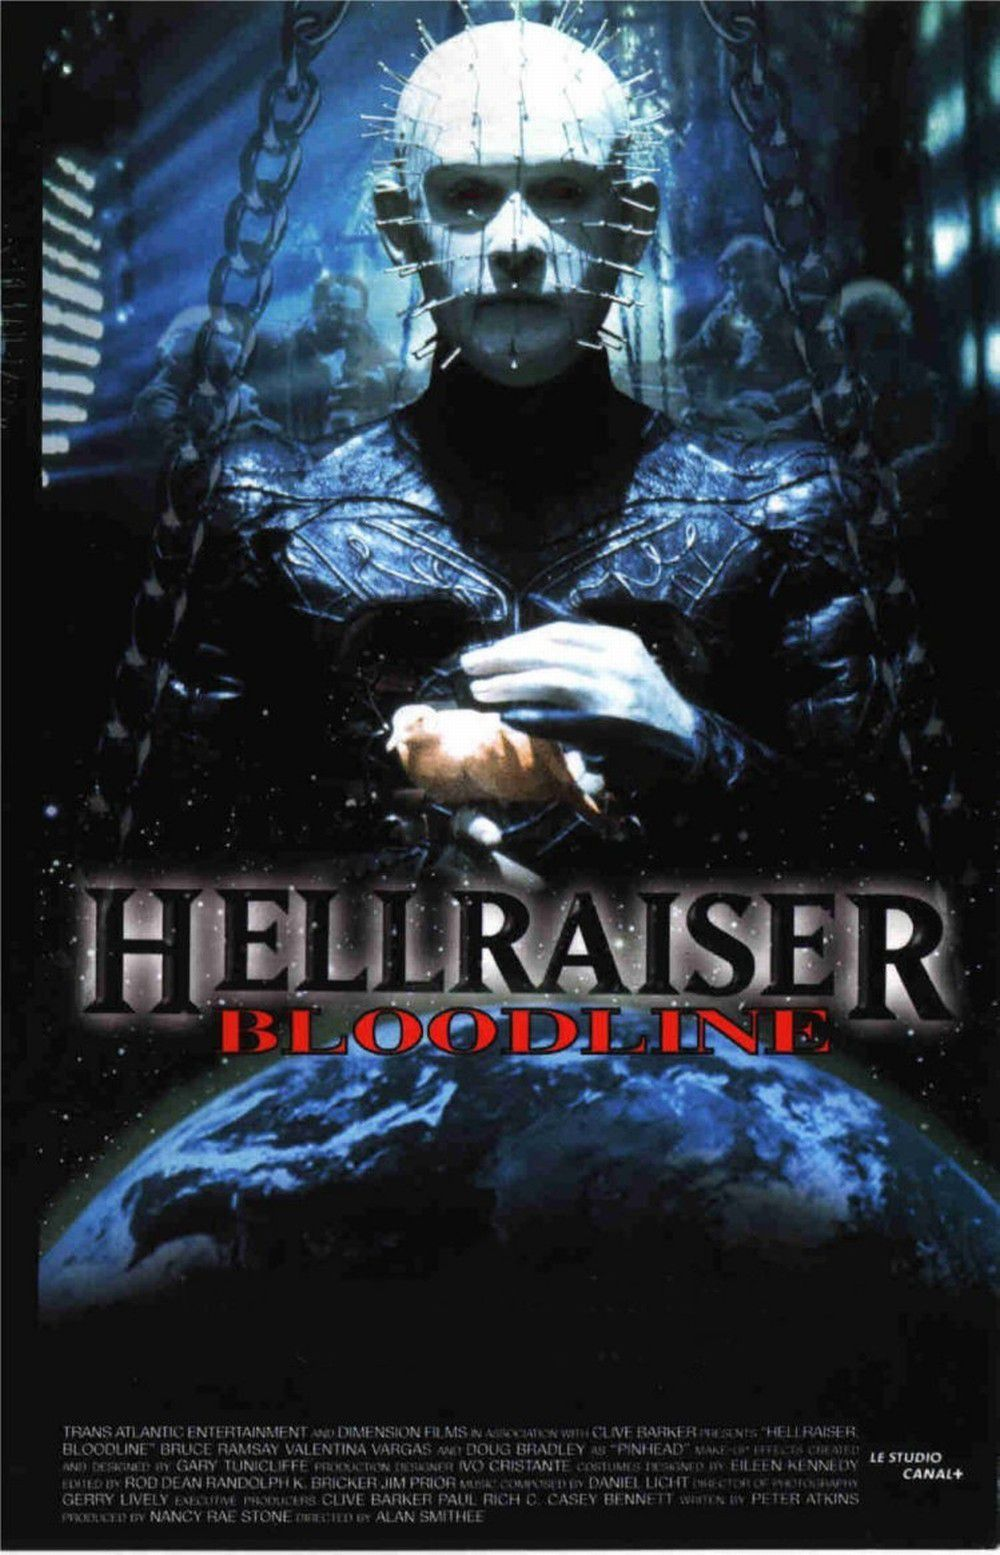 Affiche Poster hellraiser bloodline disney dimension